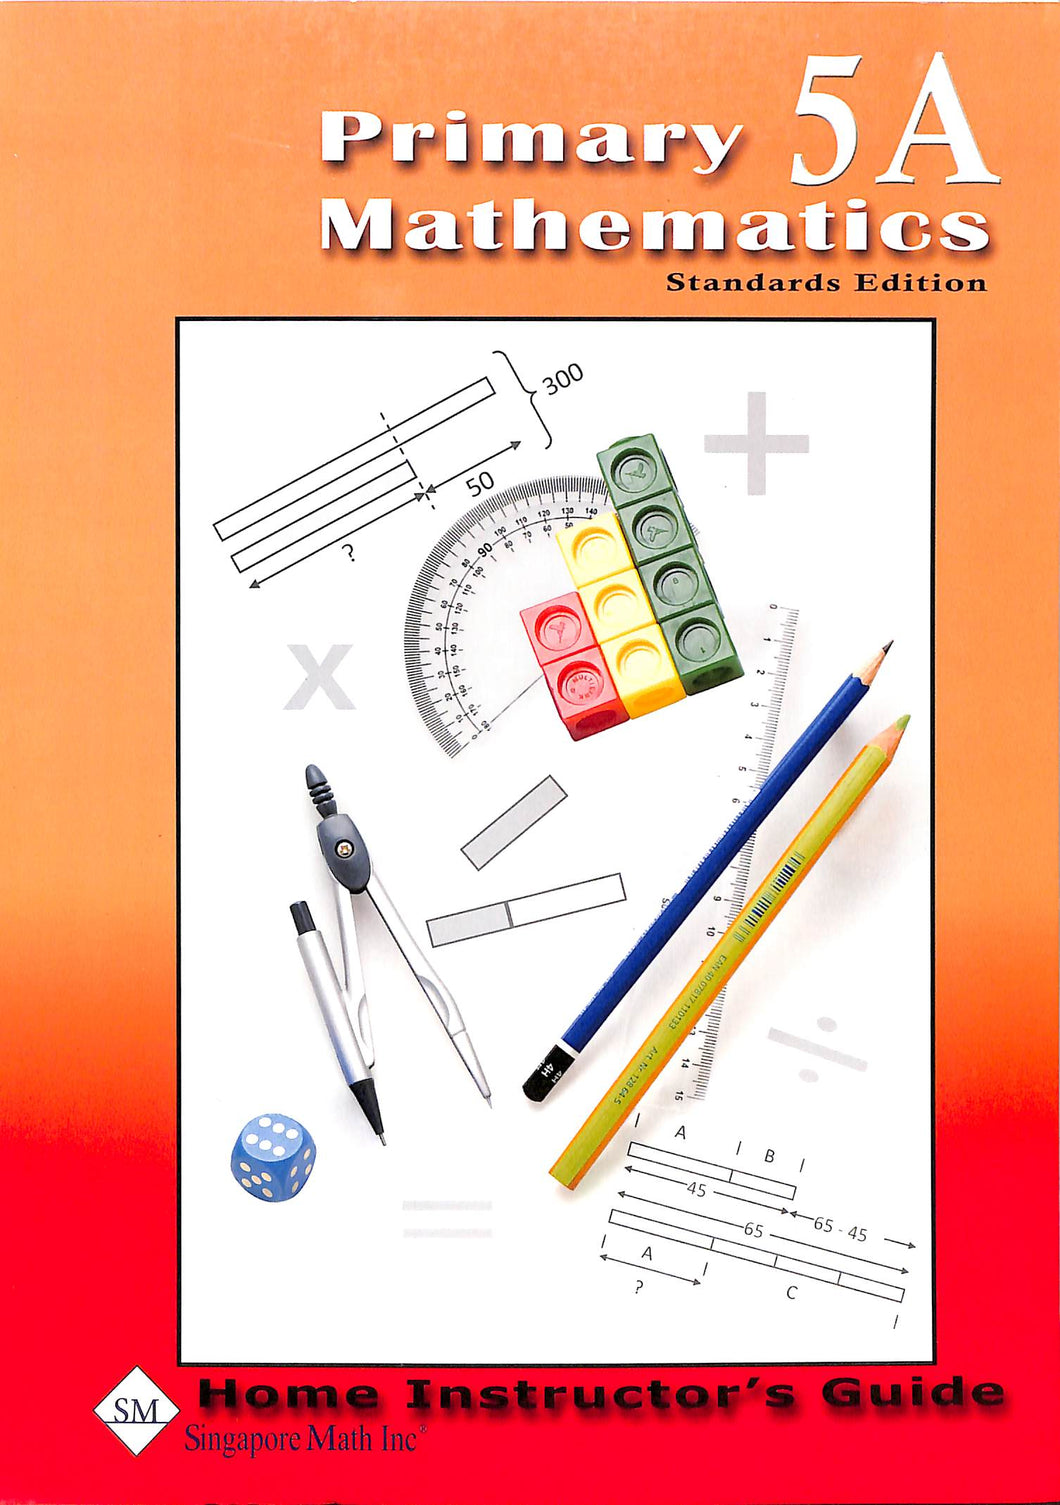 Primary Mathematics Home Instructor Guide 5A